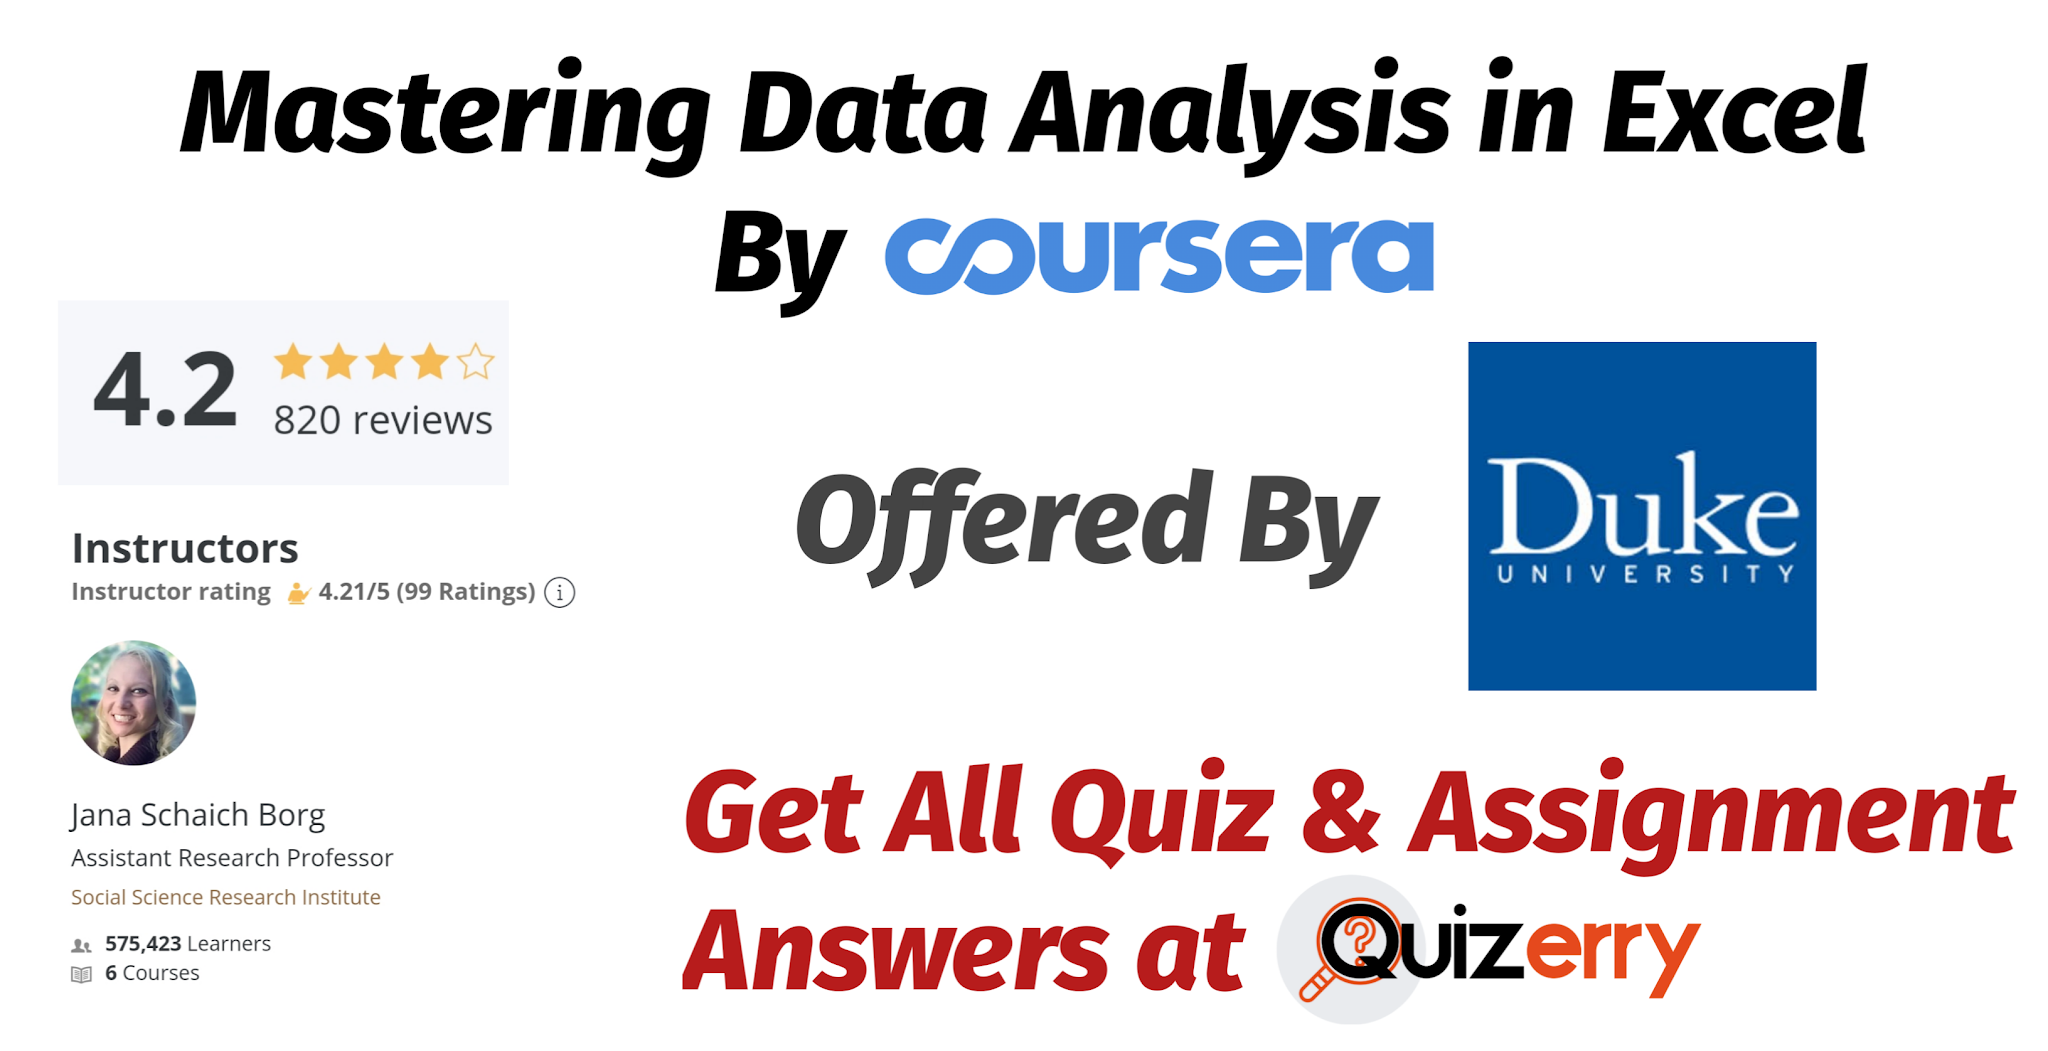 Mastering Data Analysis in Excel - Coursera Quiz Answers